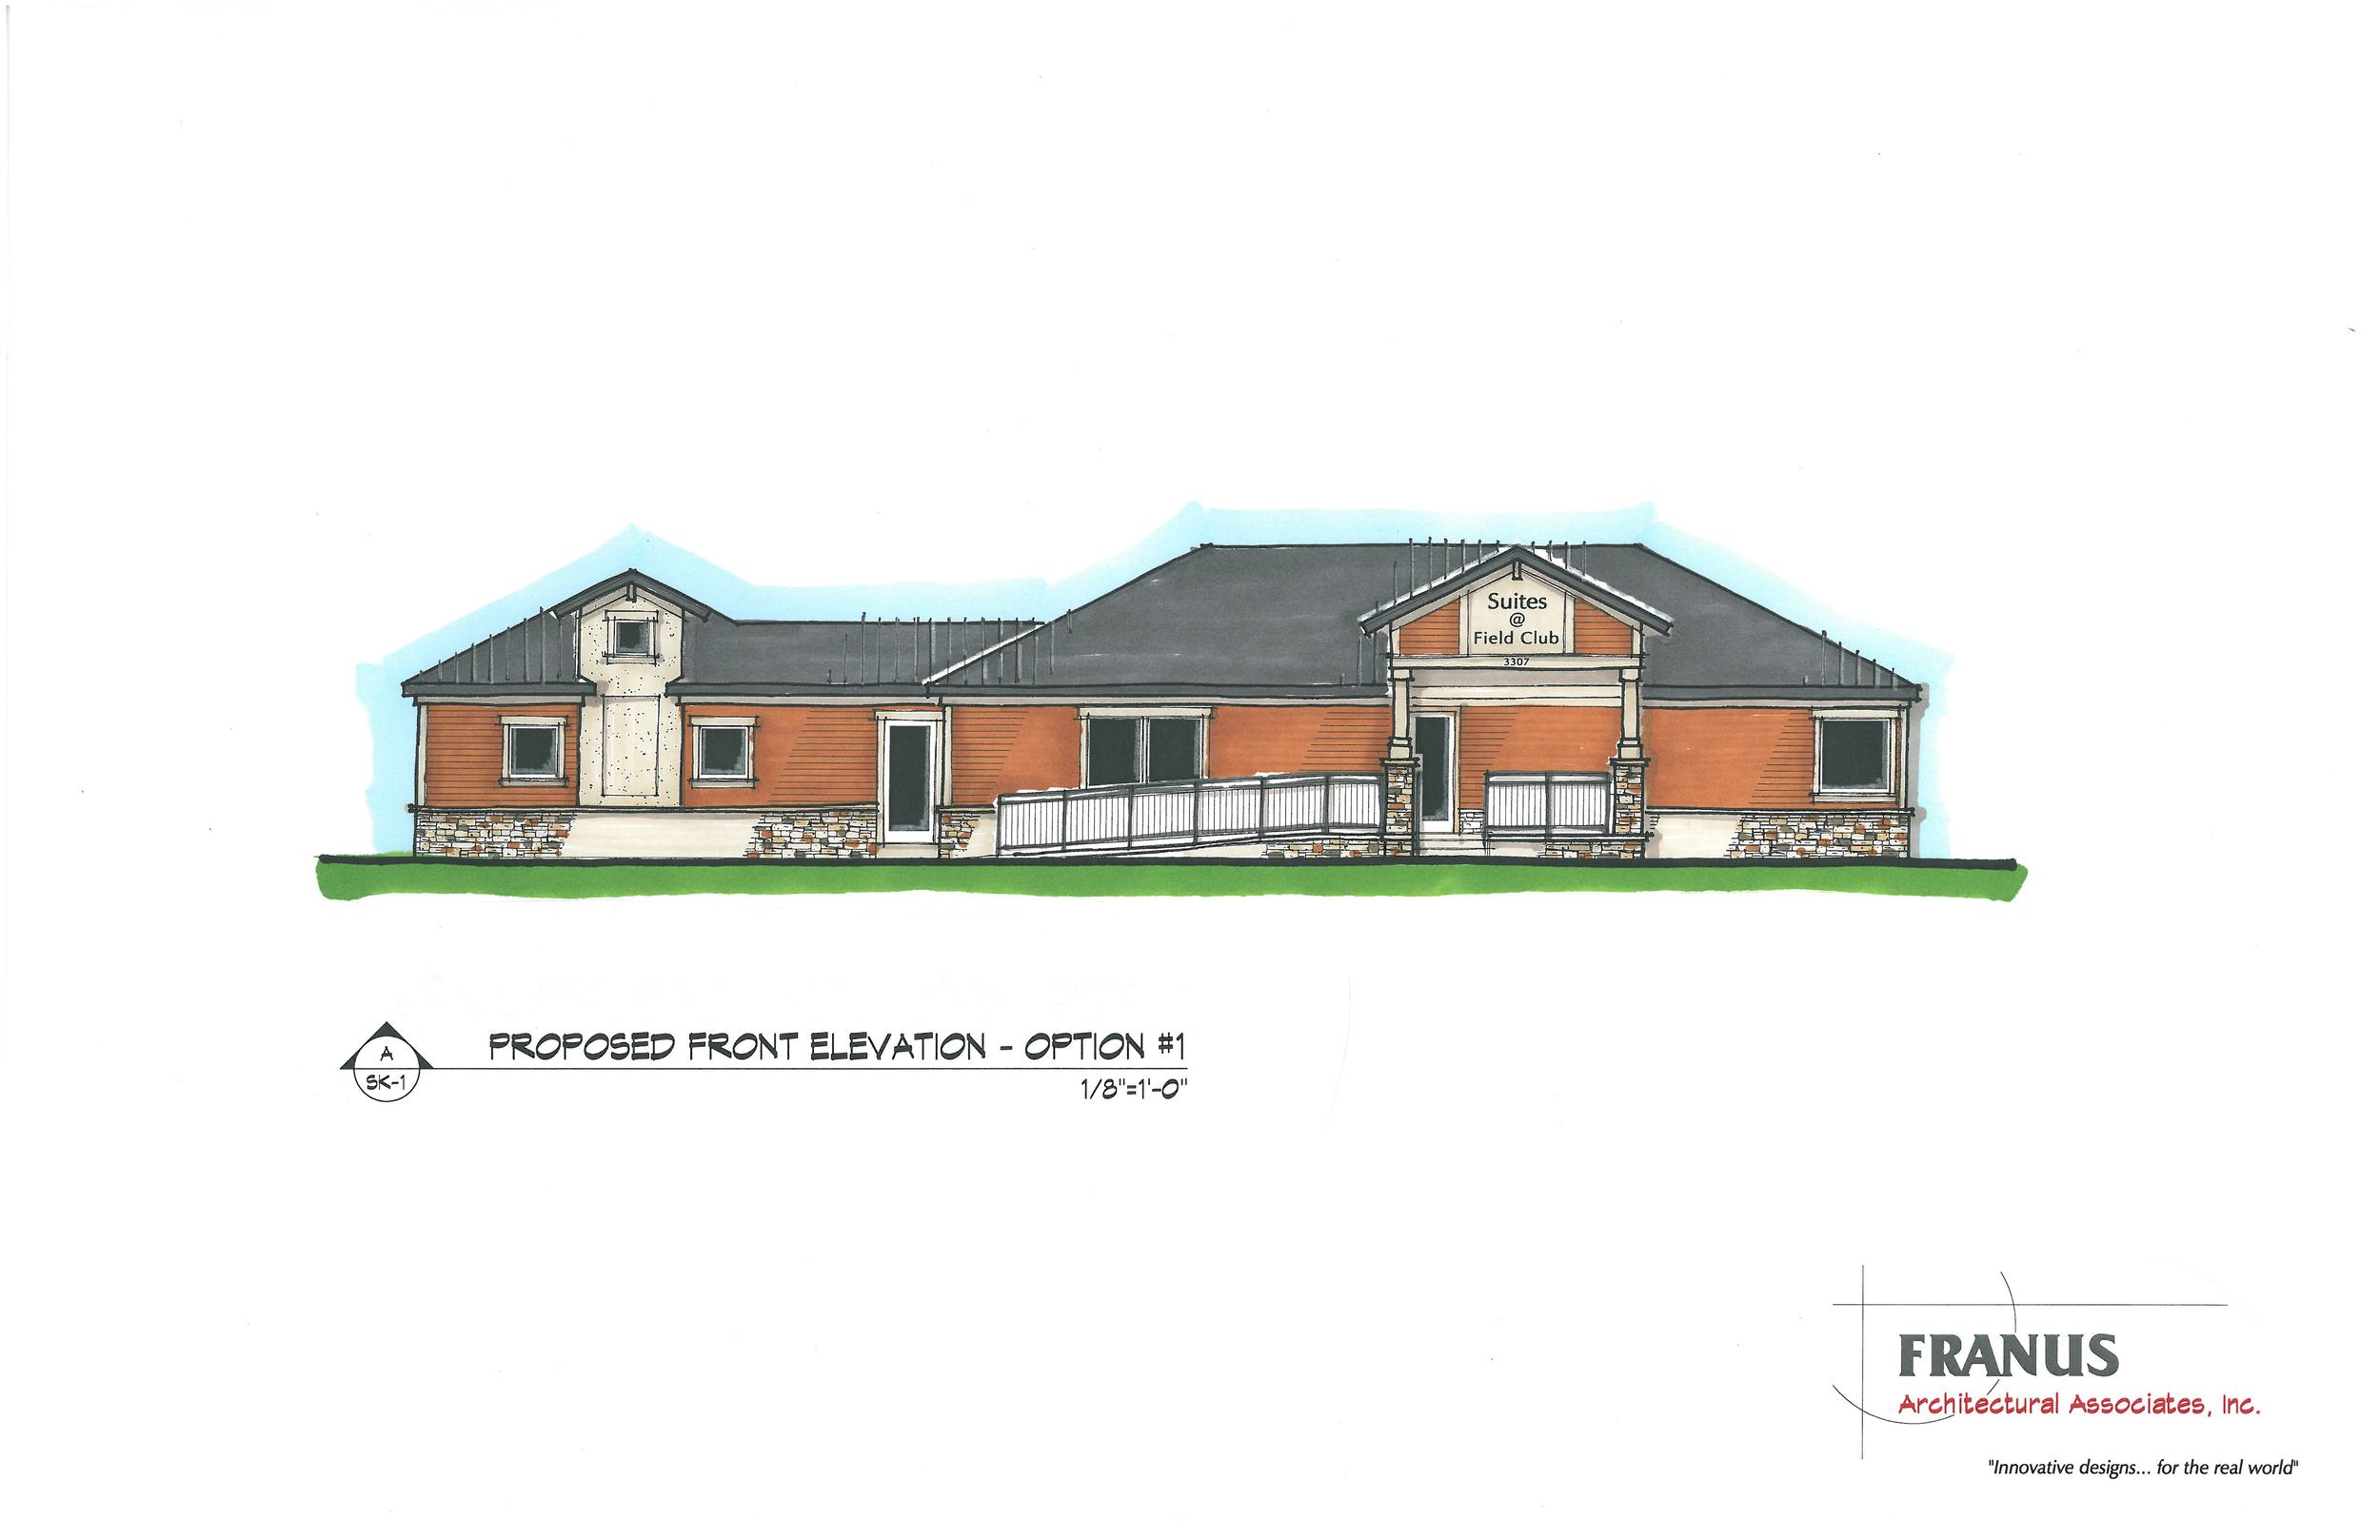 Commercial office building rendering